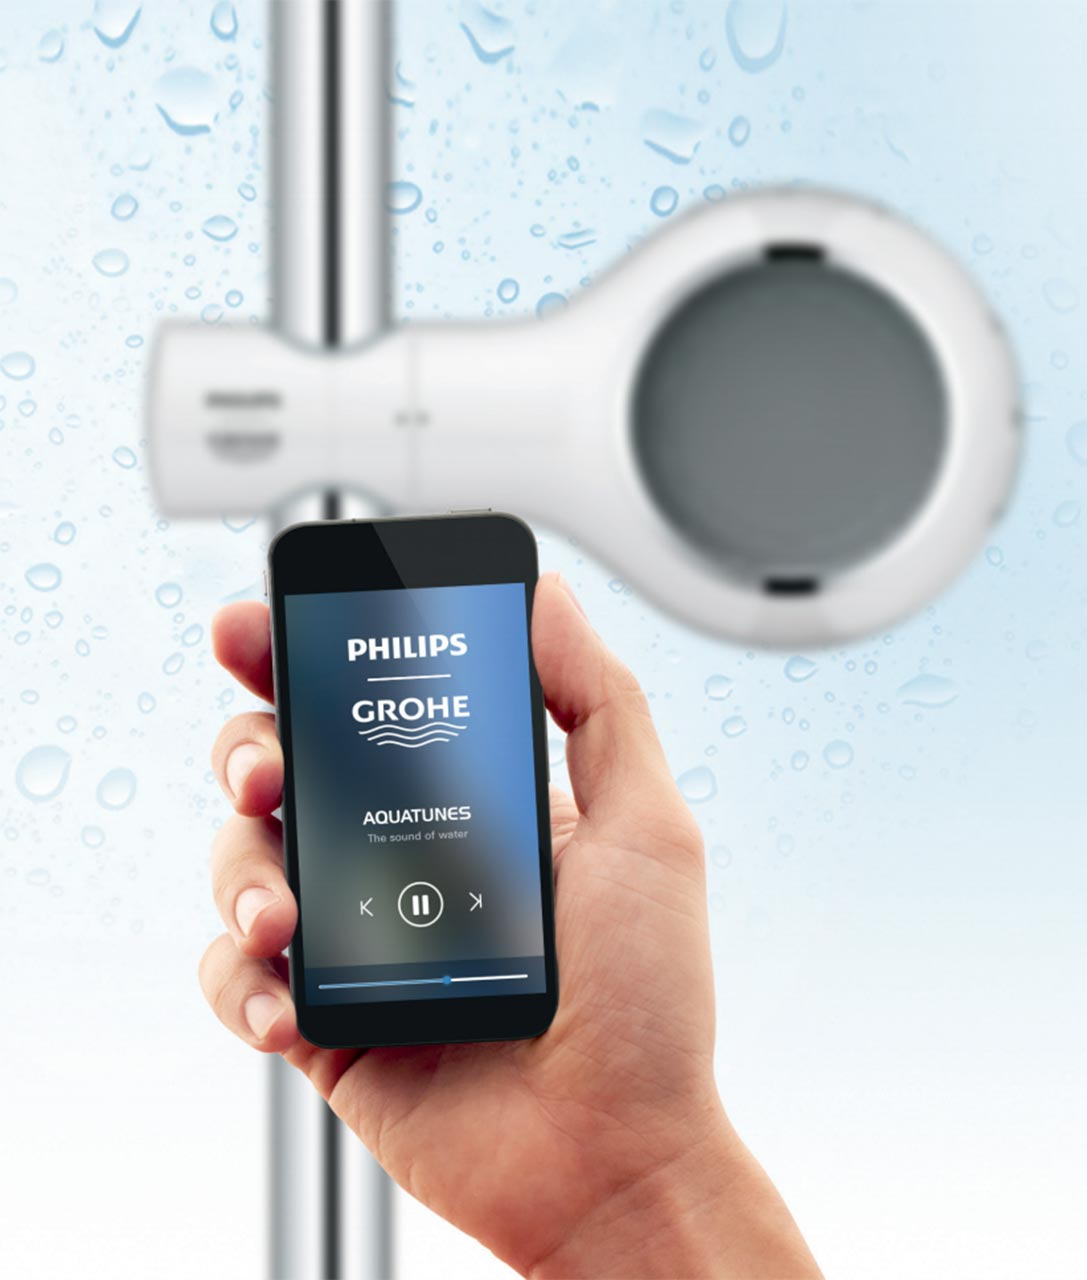 Philips Grohe Aquatunes